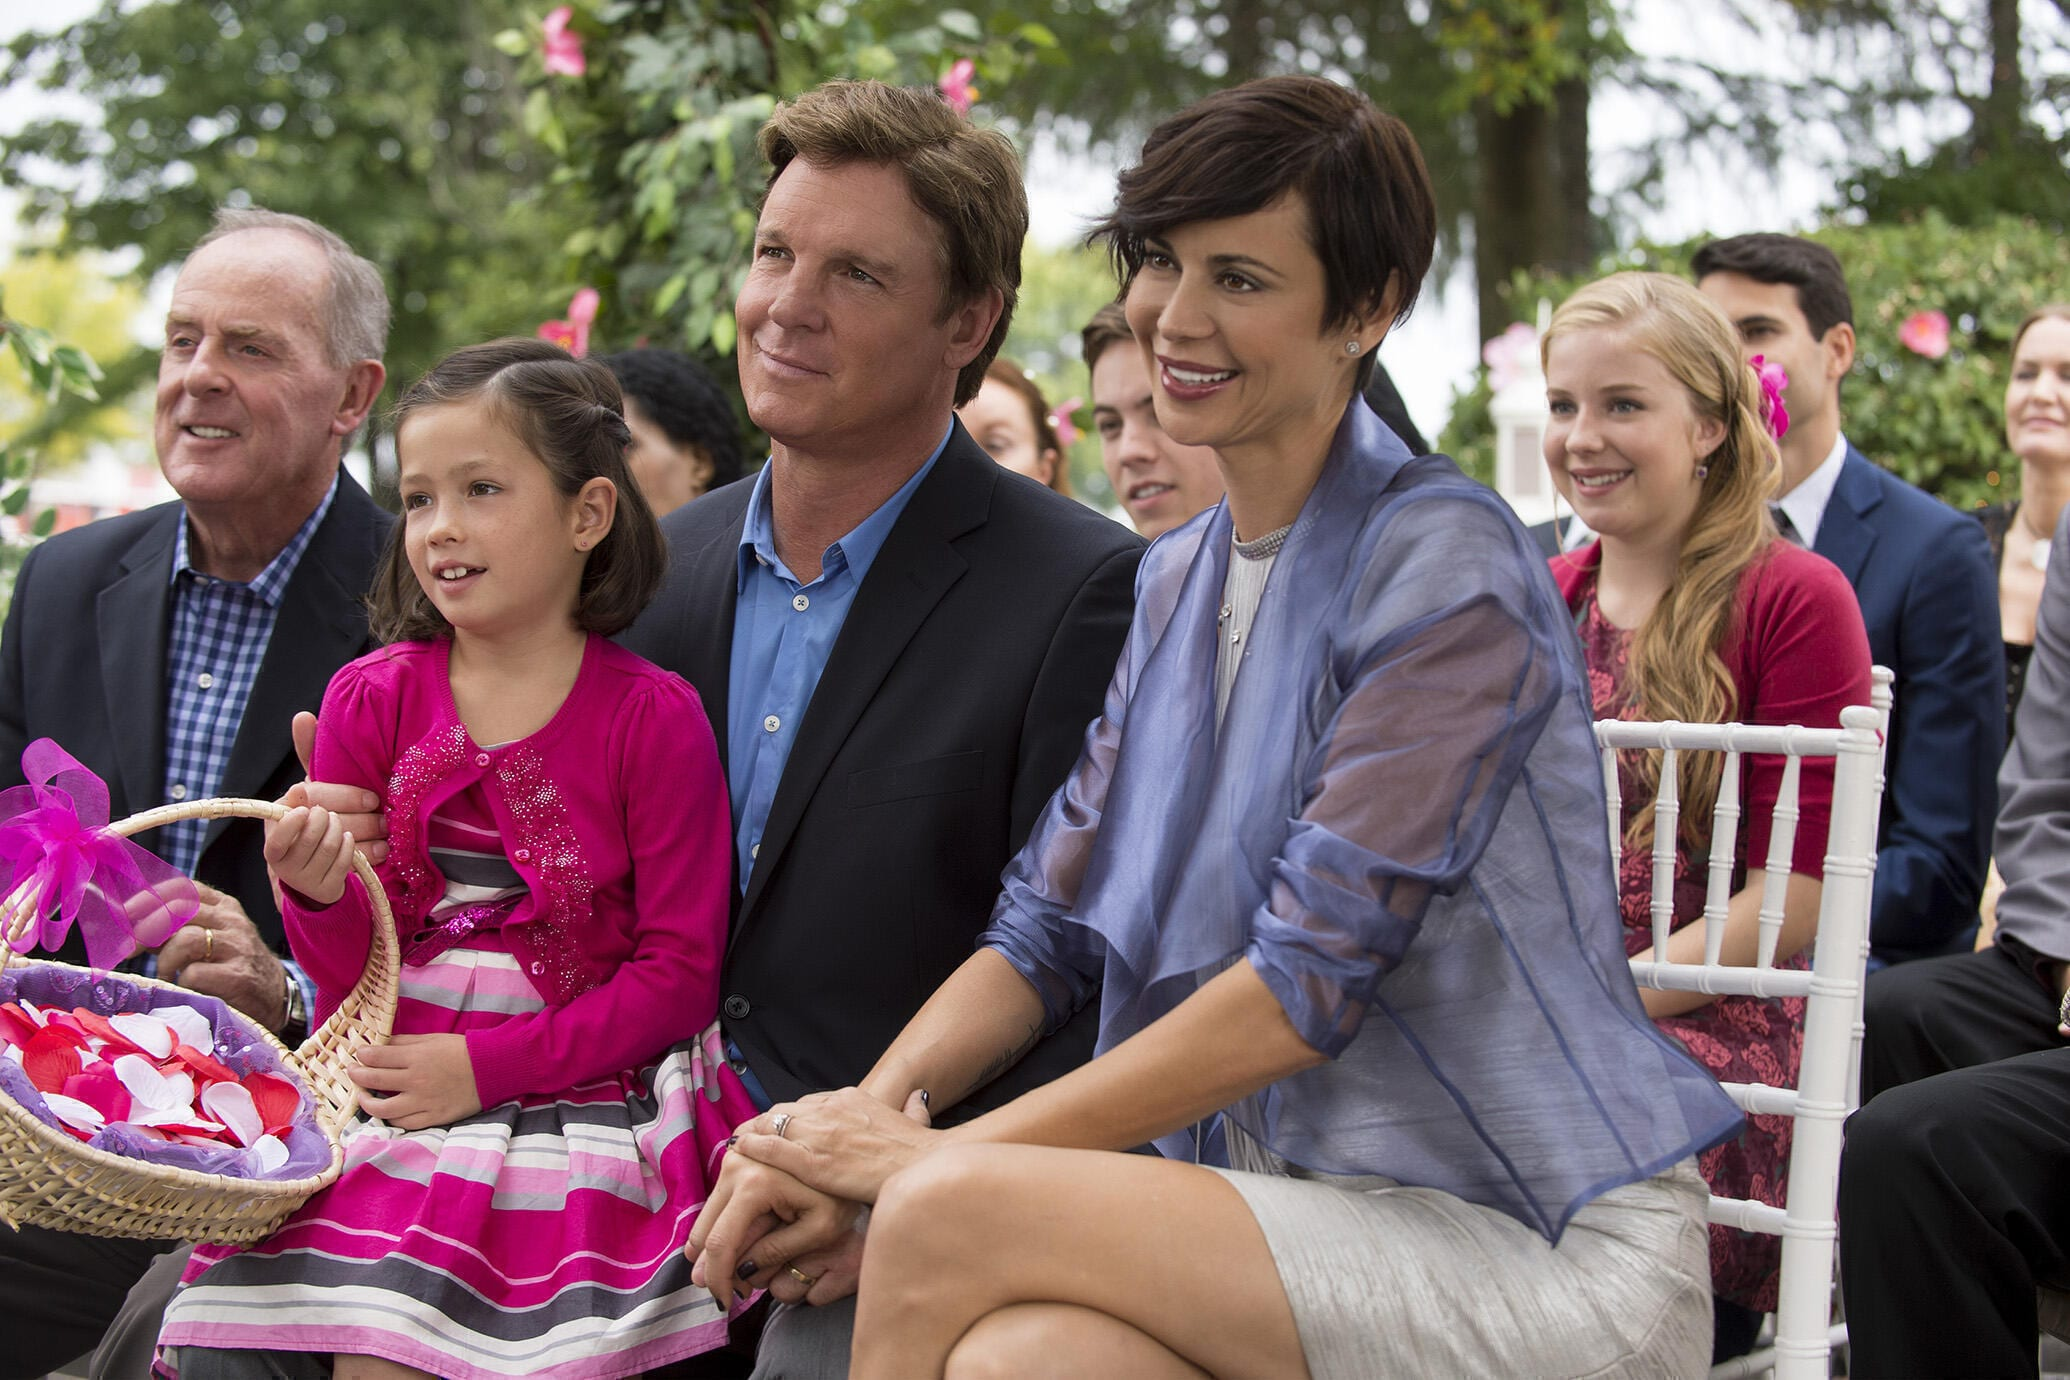 The Good Witch Season 7 Episode 1 Release Date and Spoilers